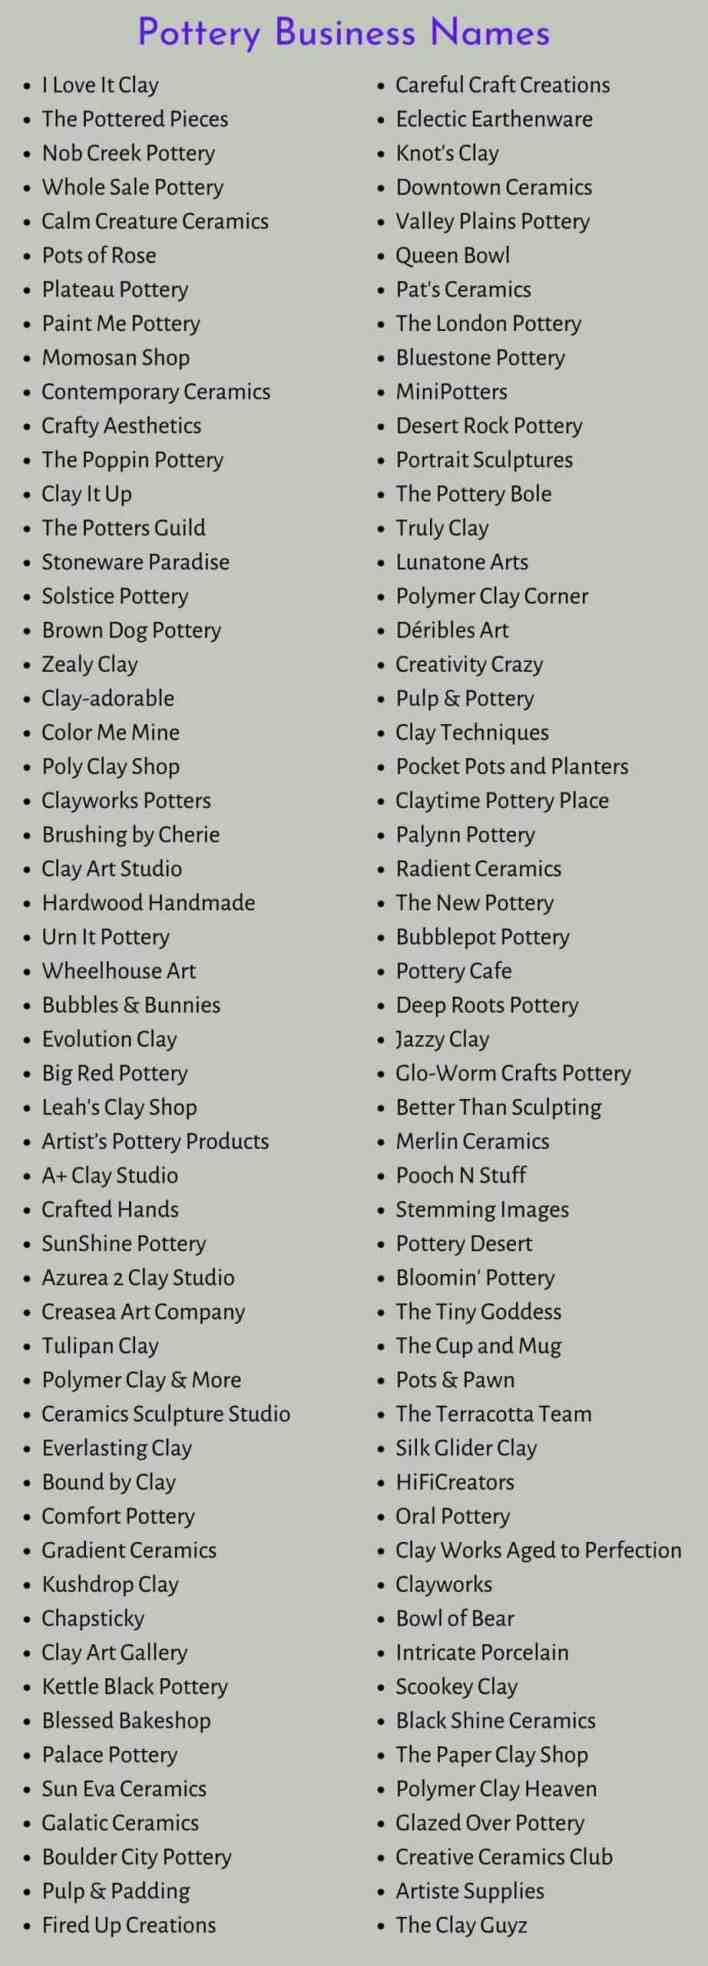 Pottery Business Names